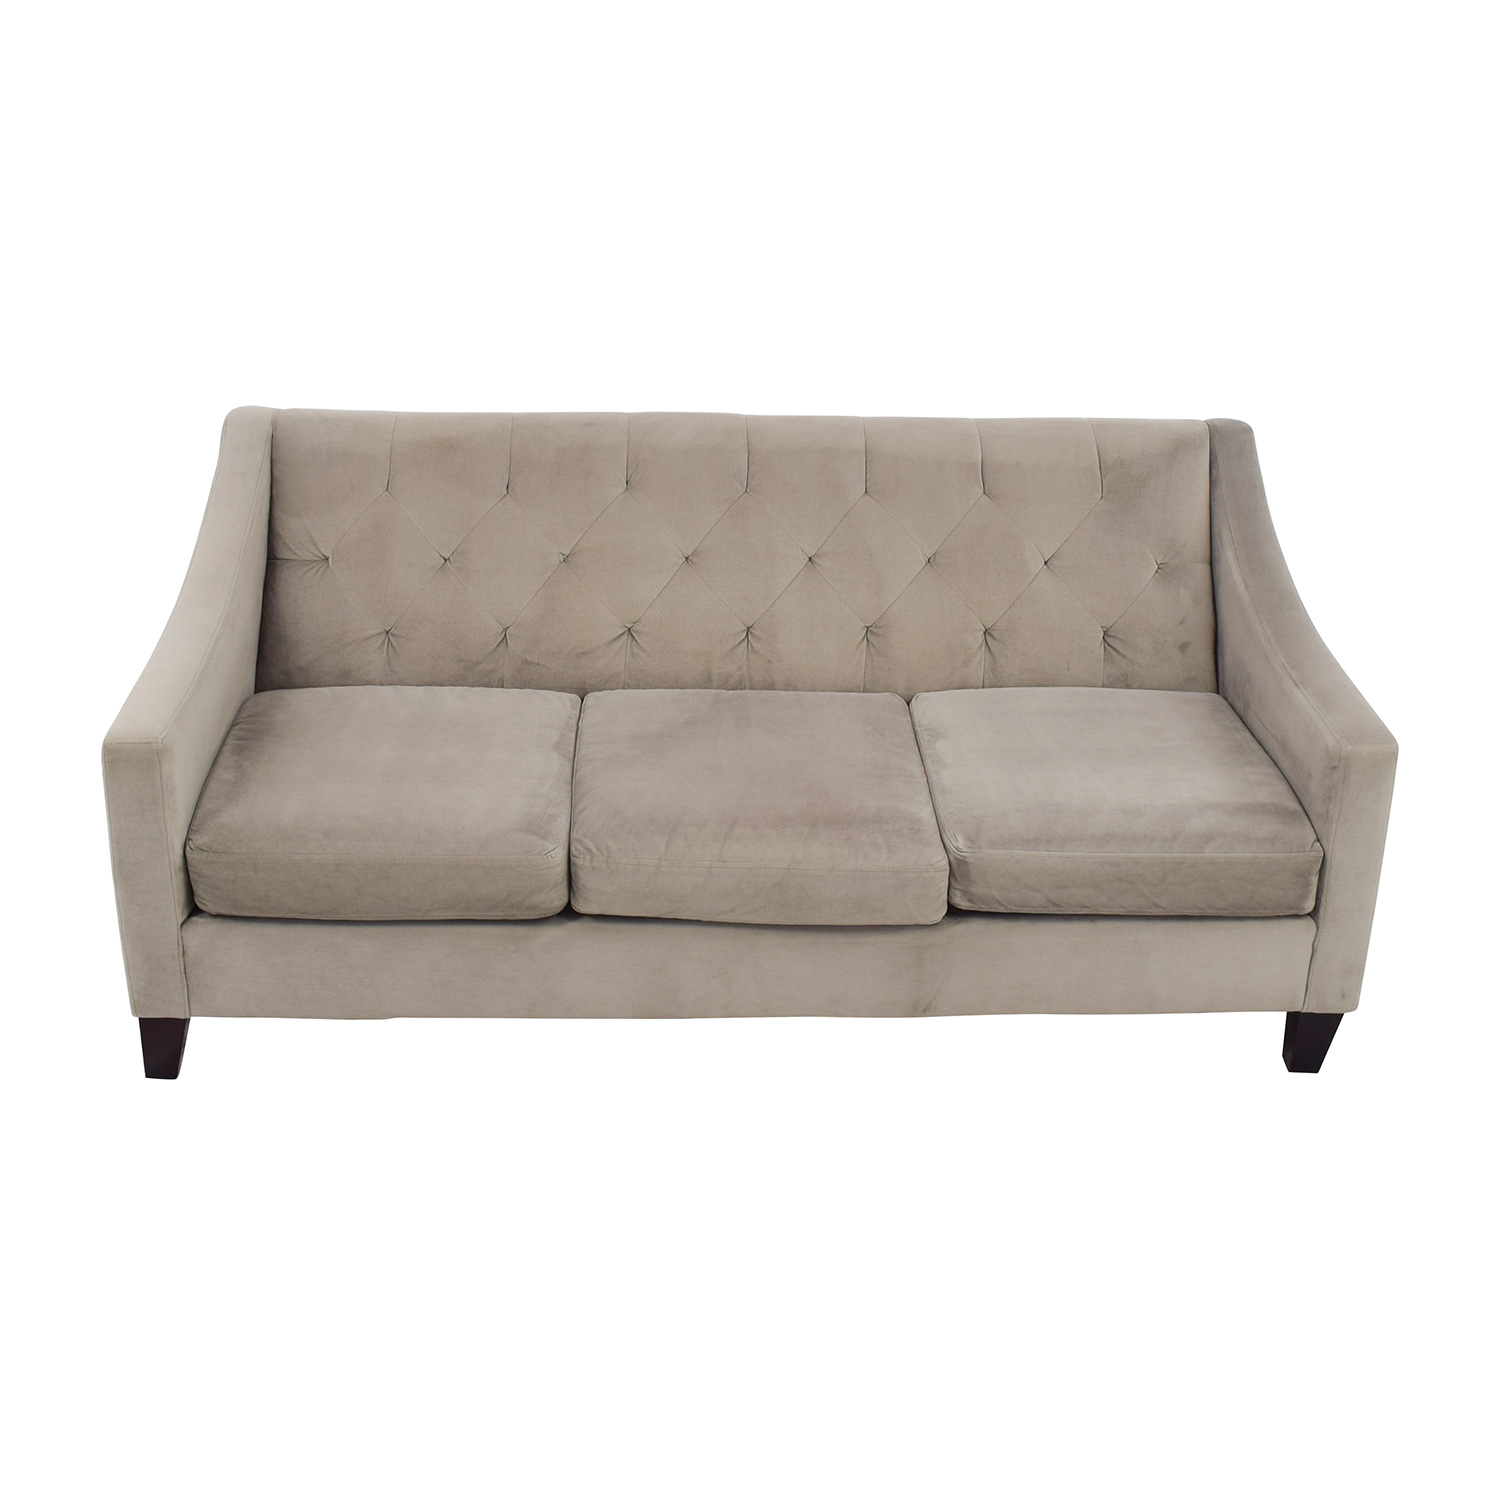 48% OFF Raymour & Flanigan Raymour & Flanigan Grey Leather Couch